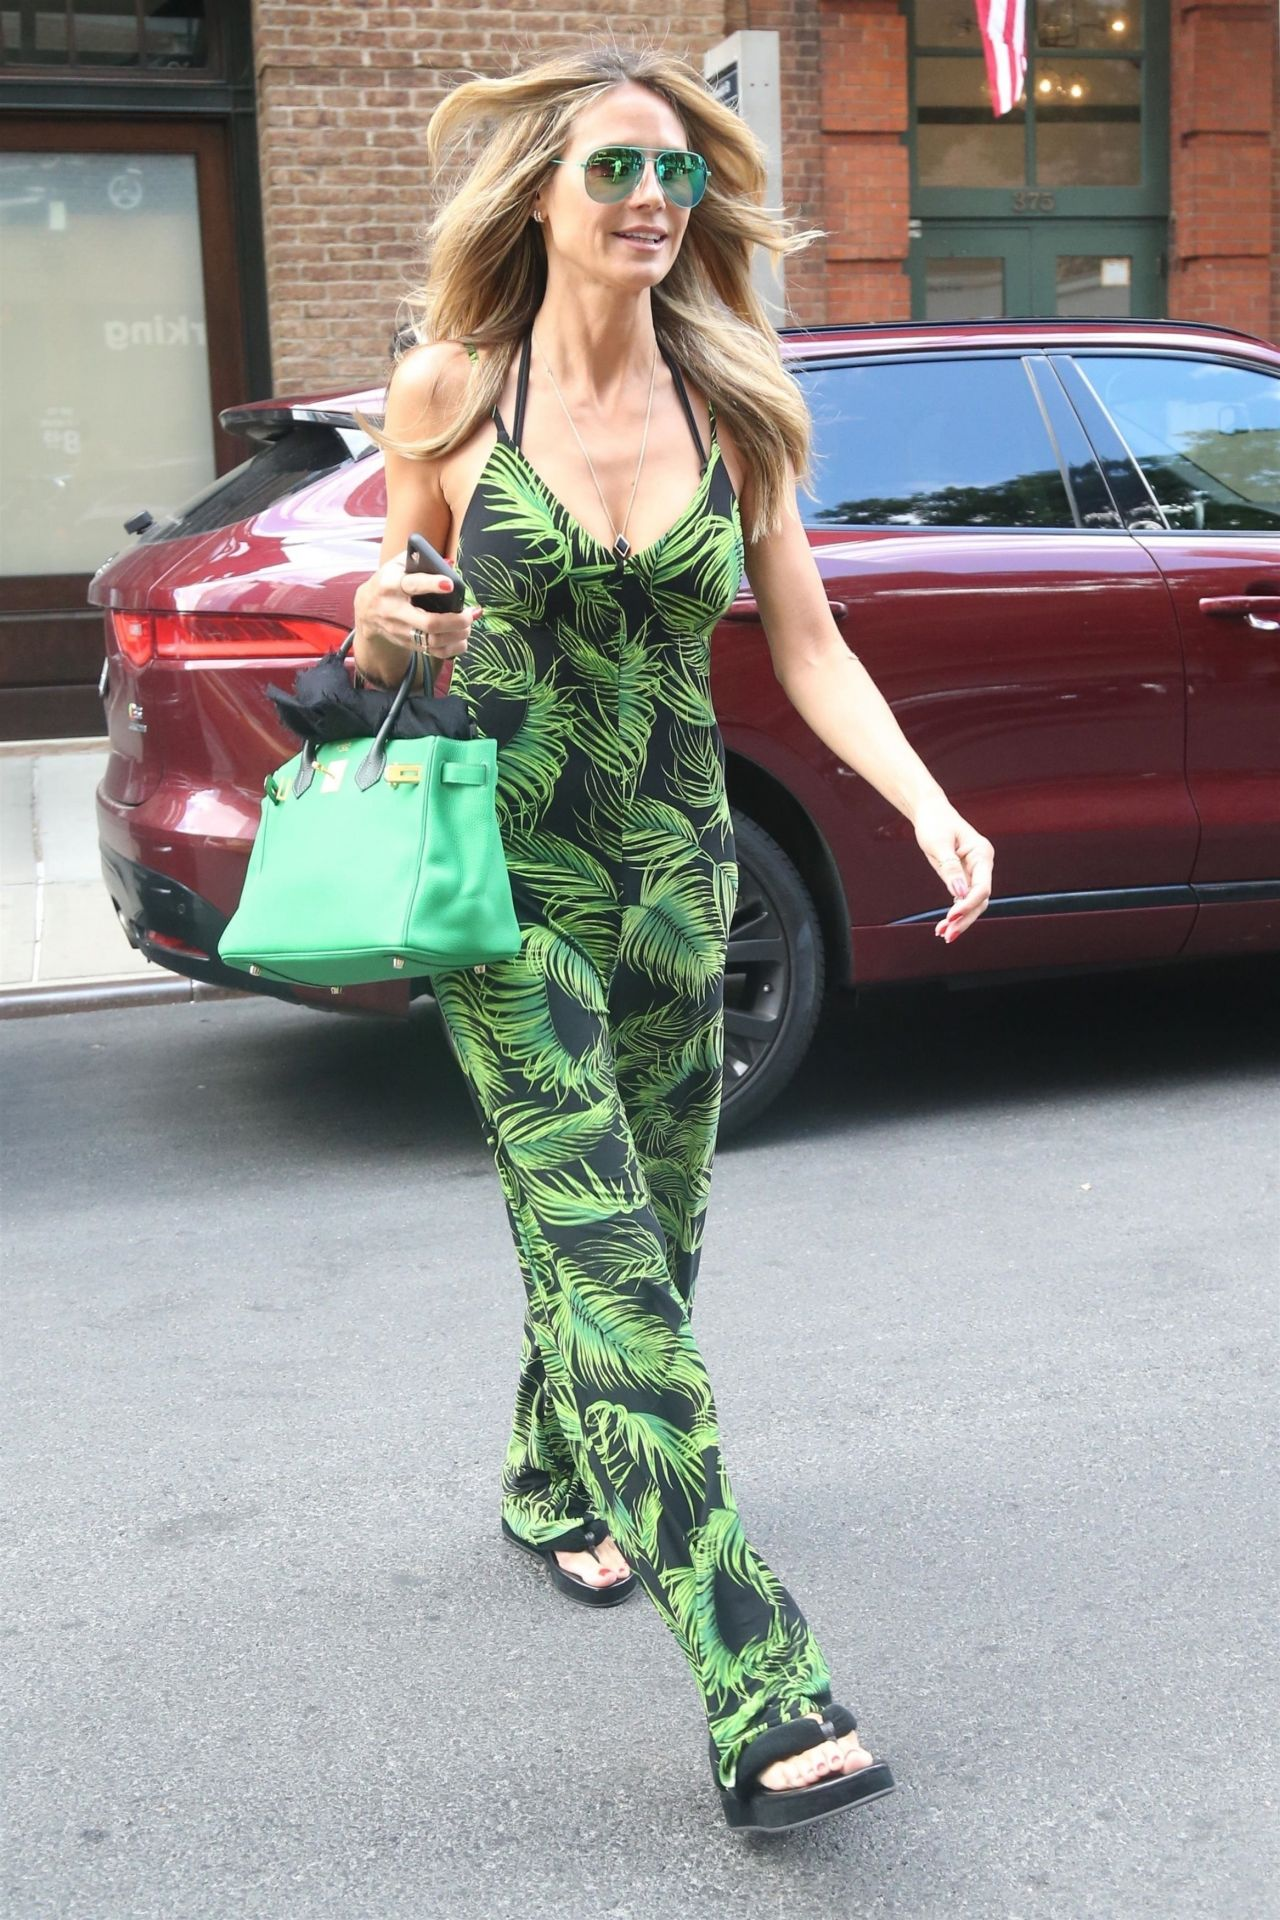 heidi-klum-leaves-an-office-building-in-nyc-06-25-2018-12.jpg